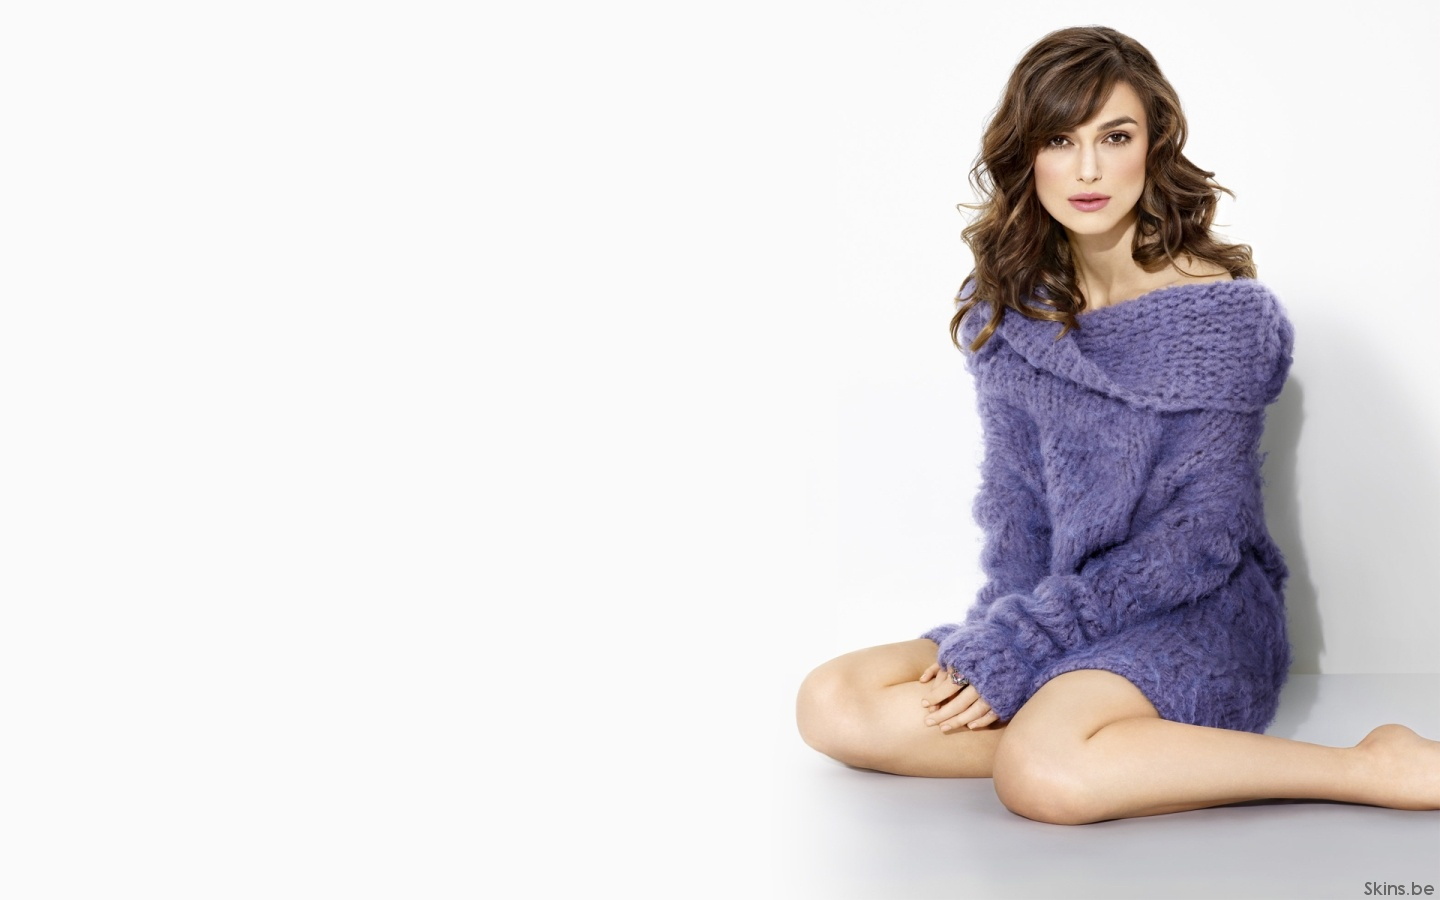 Keira Knightley wallpaper (#36657)